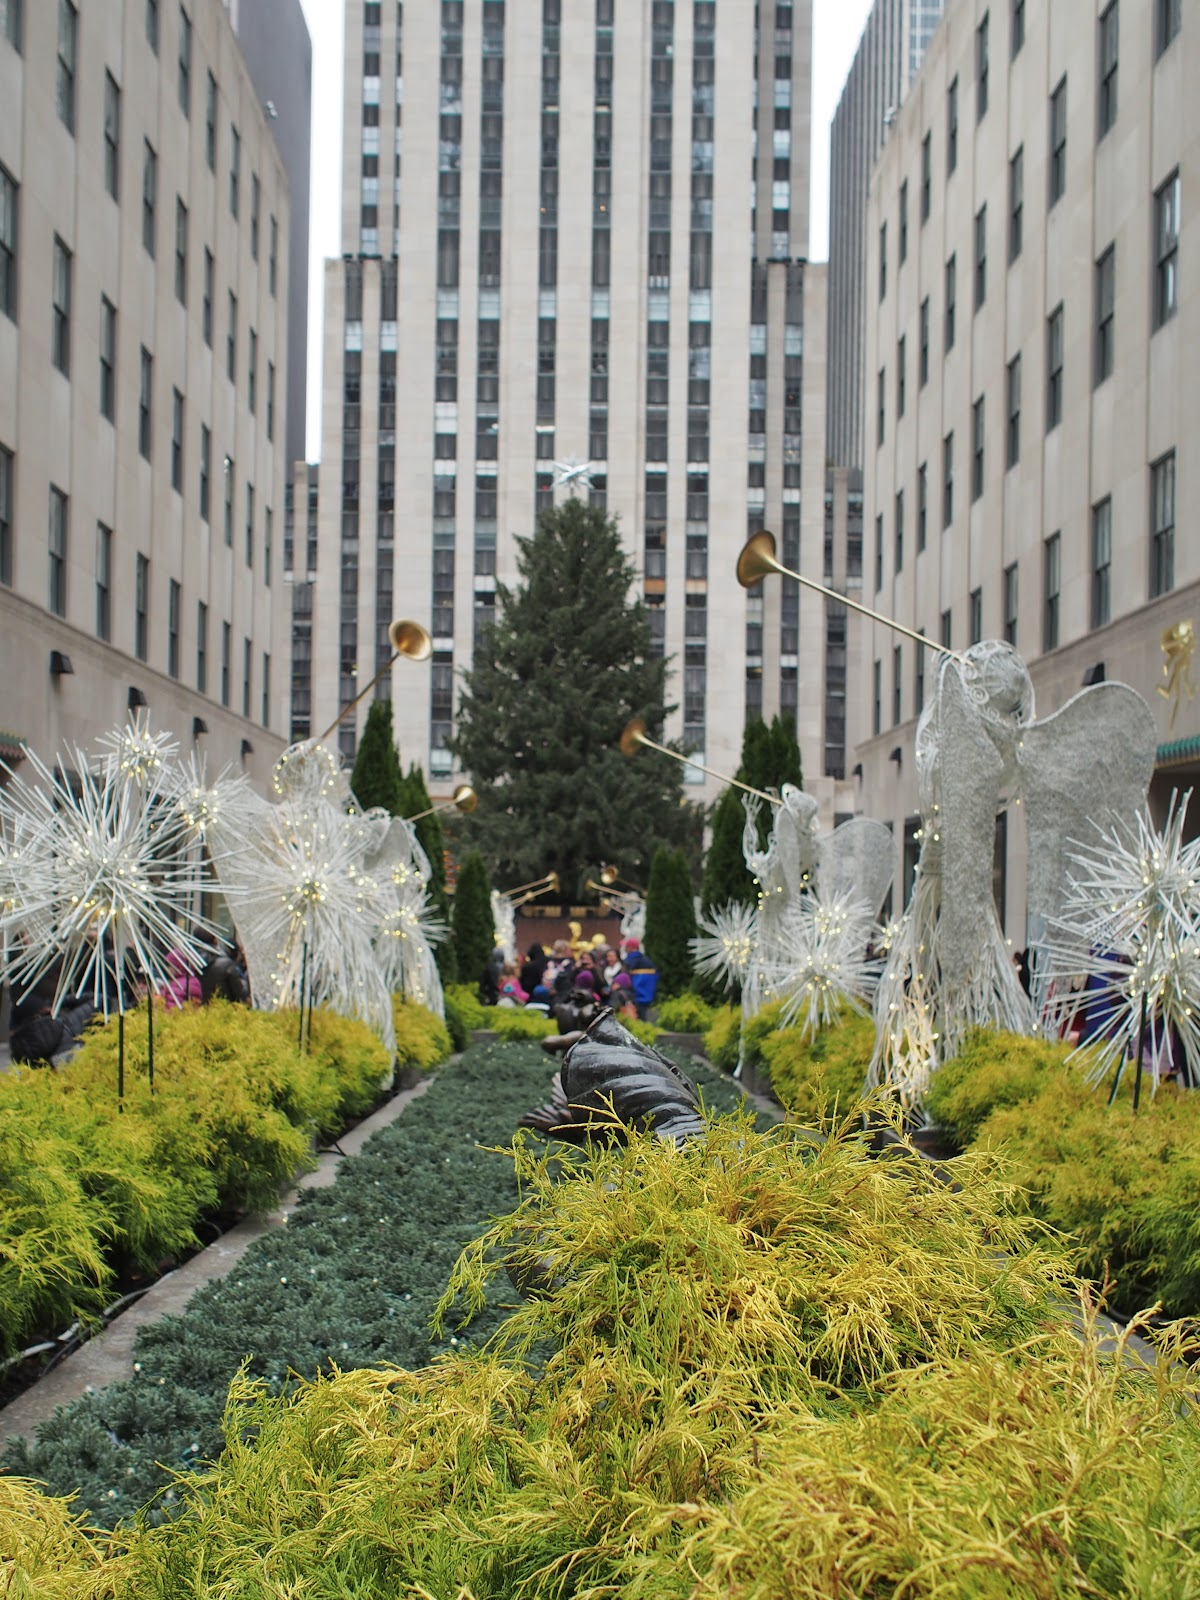 The 2014 #RockCenter Tree #the2014rockcentertree #holidays #holidaysinNYC #rockefellercenter #NYC ©2014 Nancy Lundebjerg